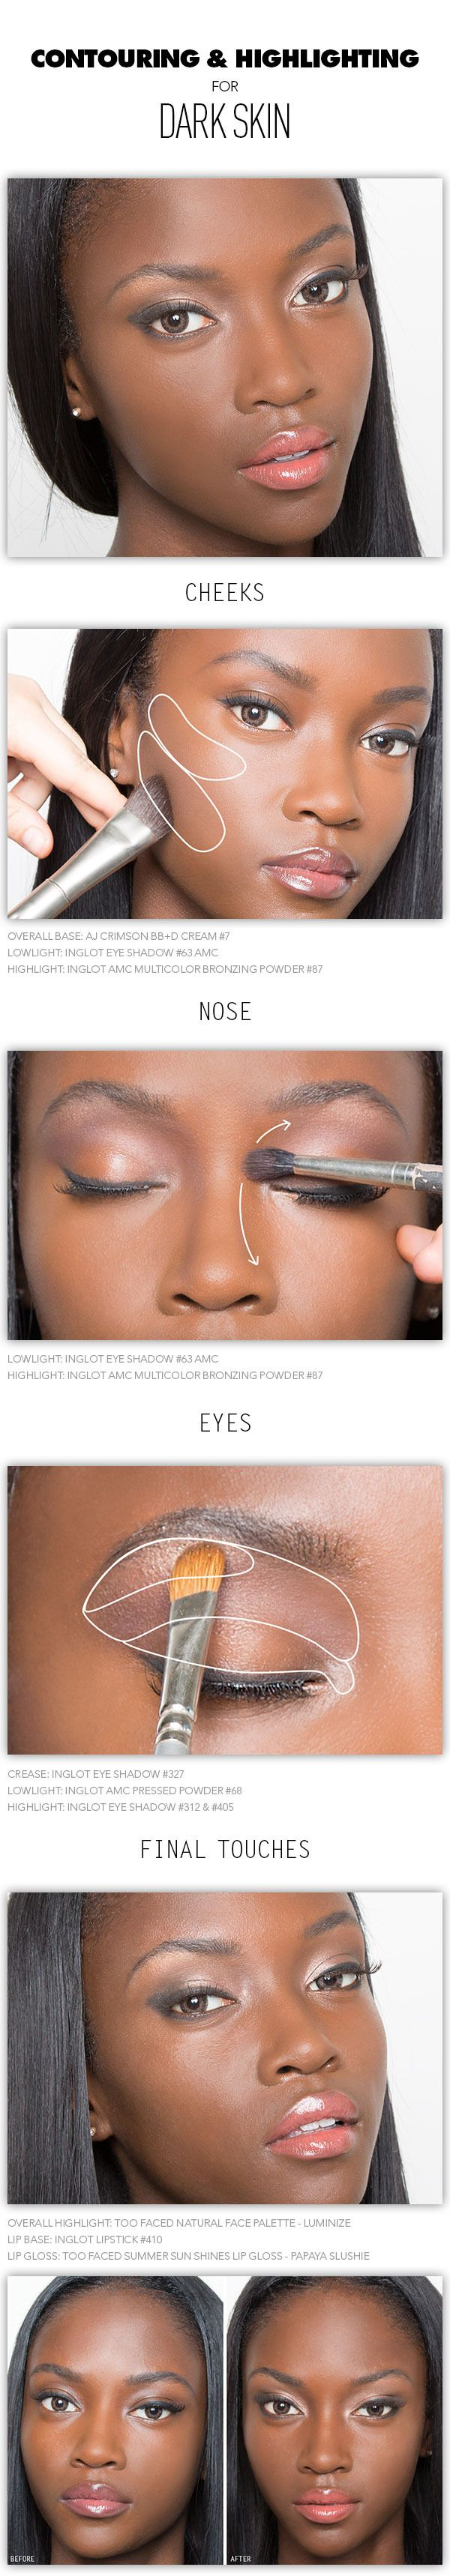 Contouring and Highlighting for Dark Skin | #contouring #highlighting #dark #skin #beauty #makeup